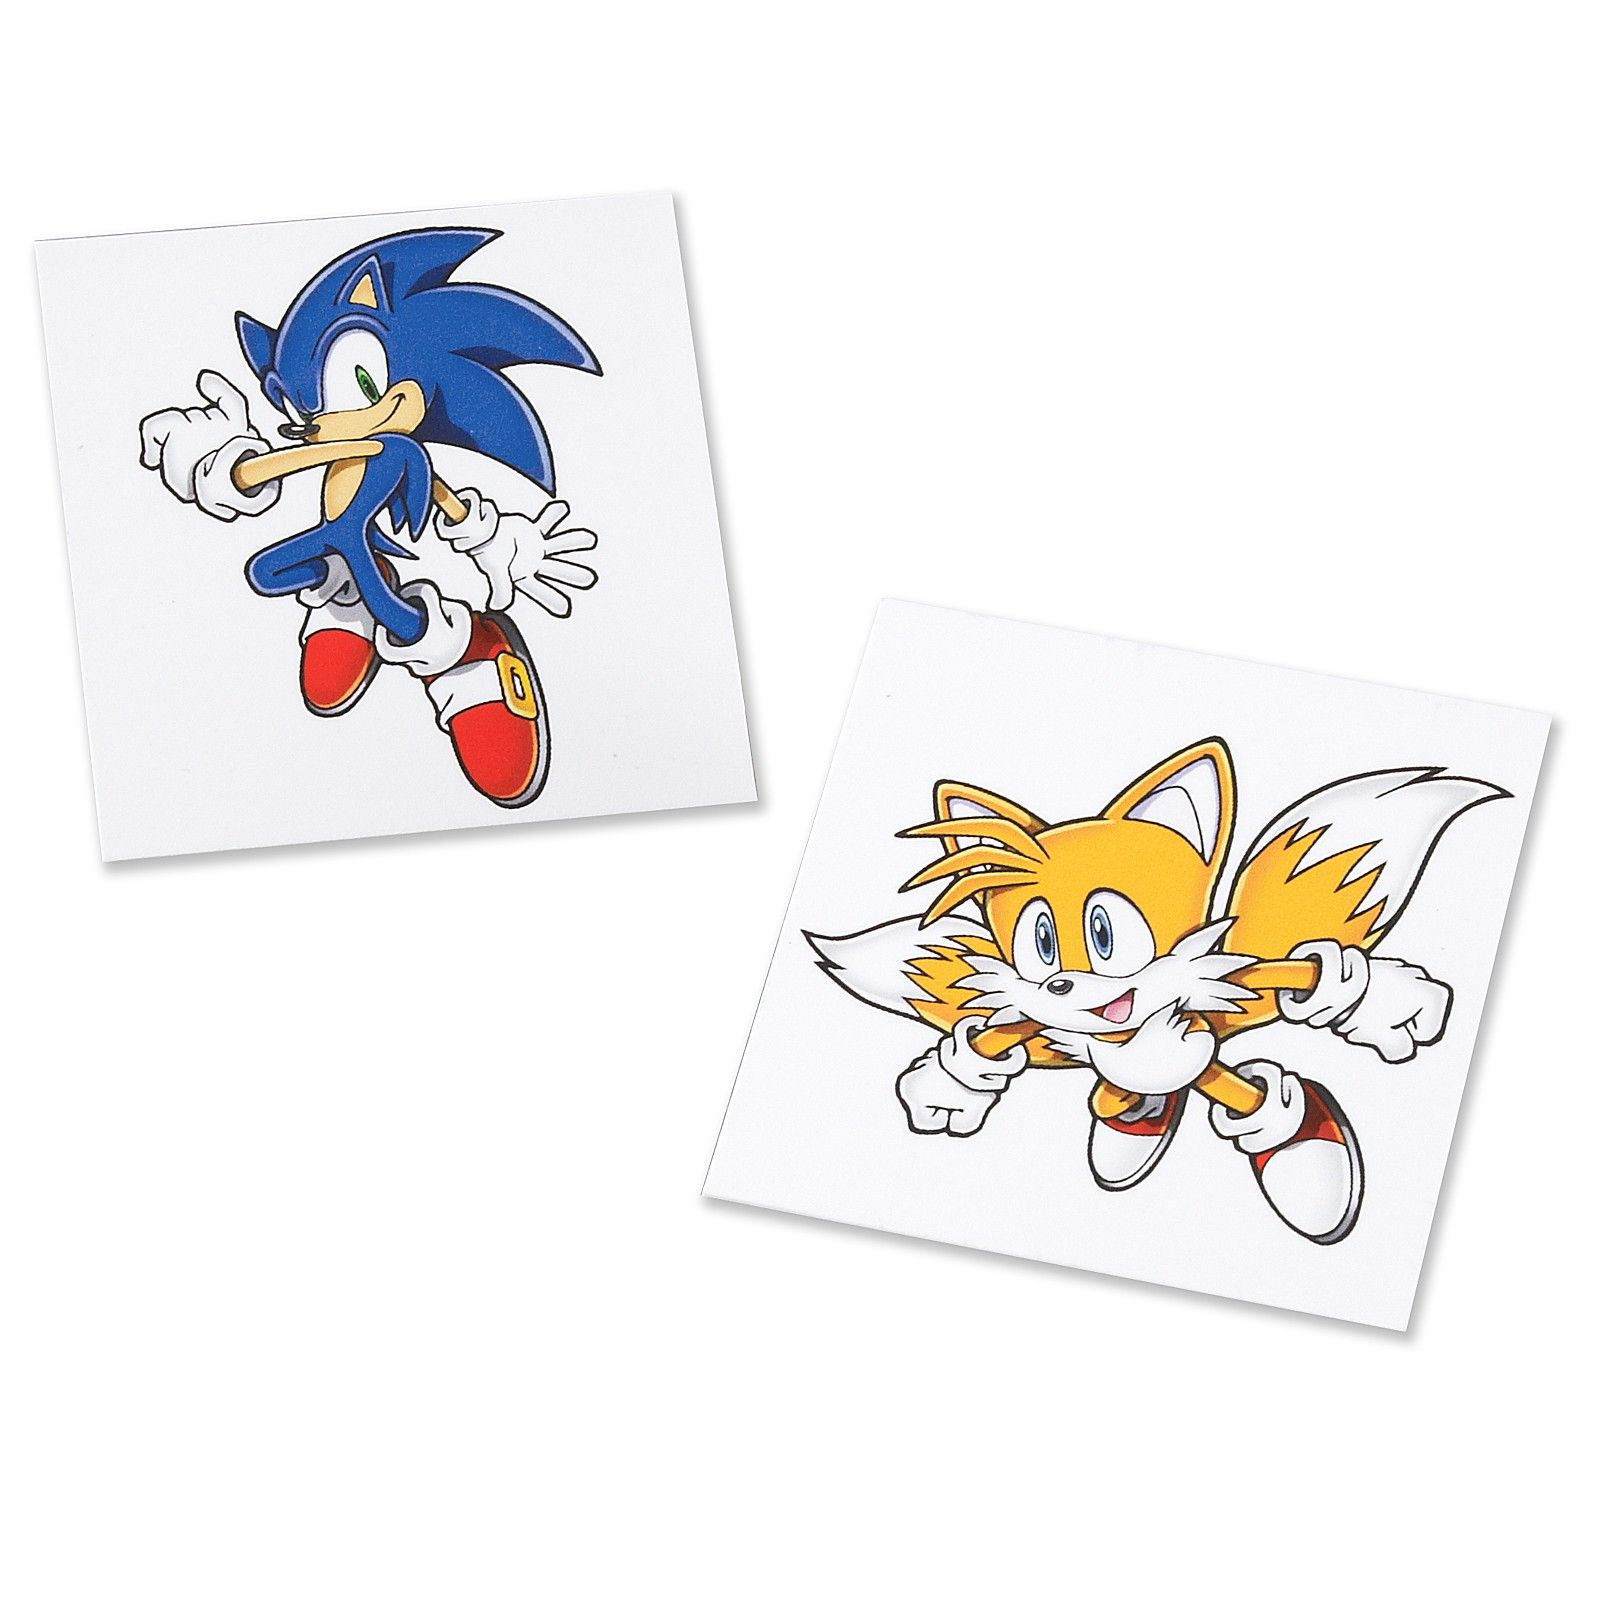 I like Sonic in this pose for sure. Maybe I'll add Tails